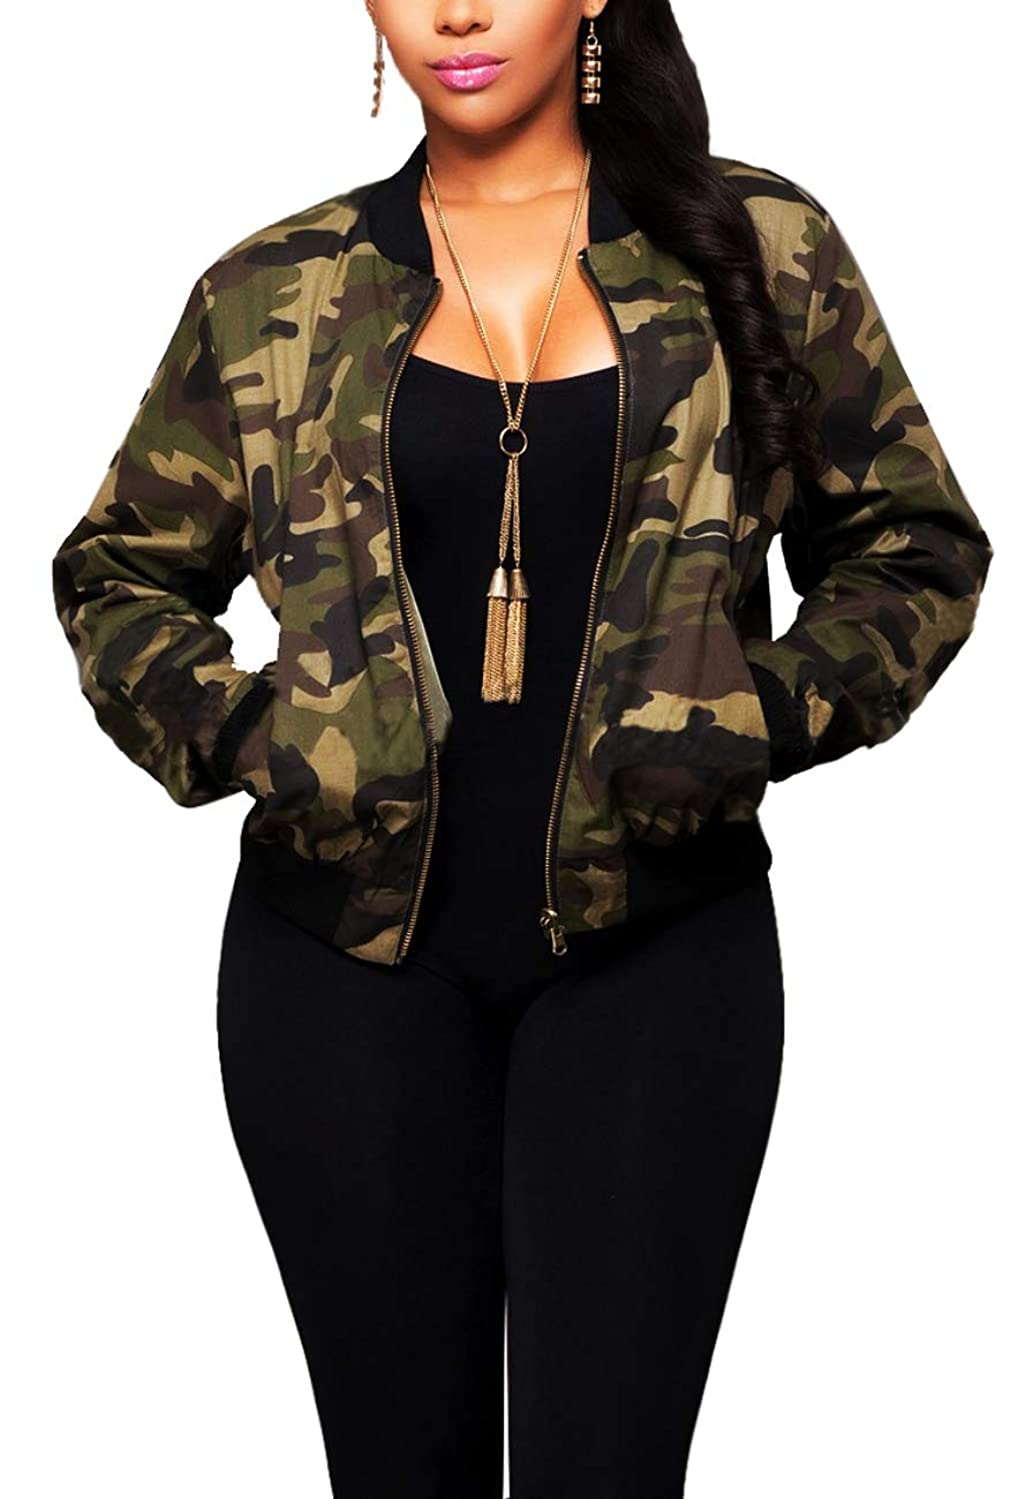 sexycherry Women Camo Casual Jacket Camouflage Sexy Long Sleeve Slim Fit Sequin Dress Lightweight Military Coat Pockets